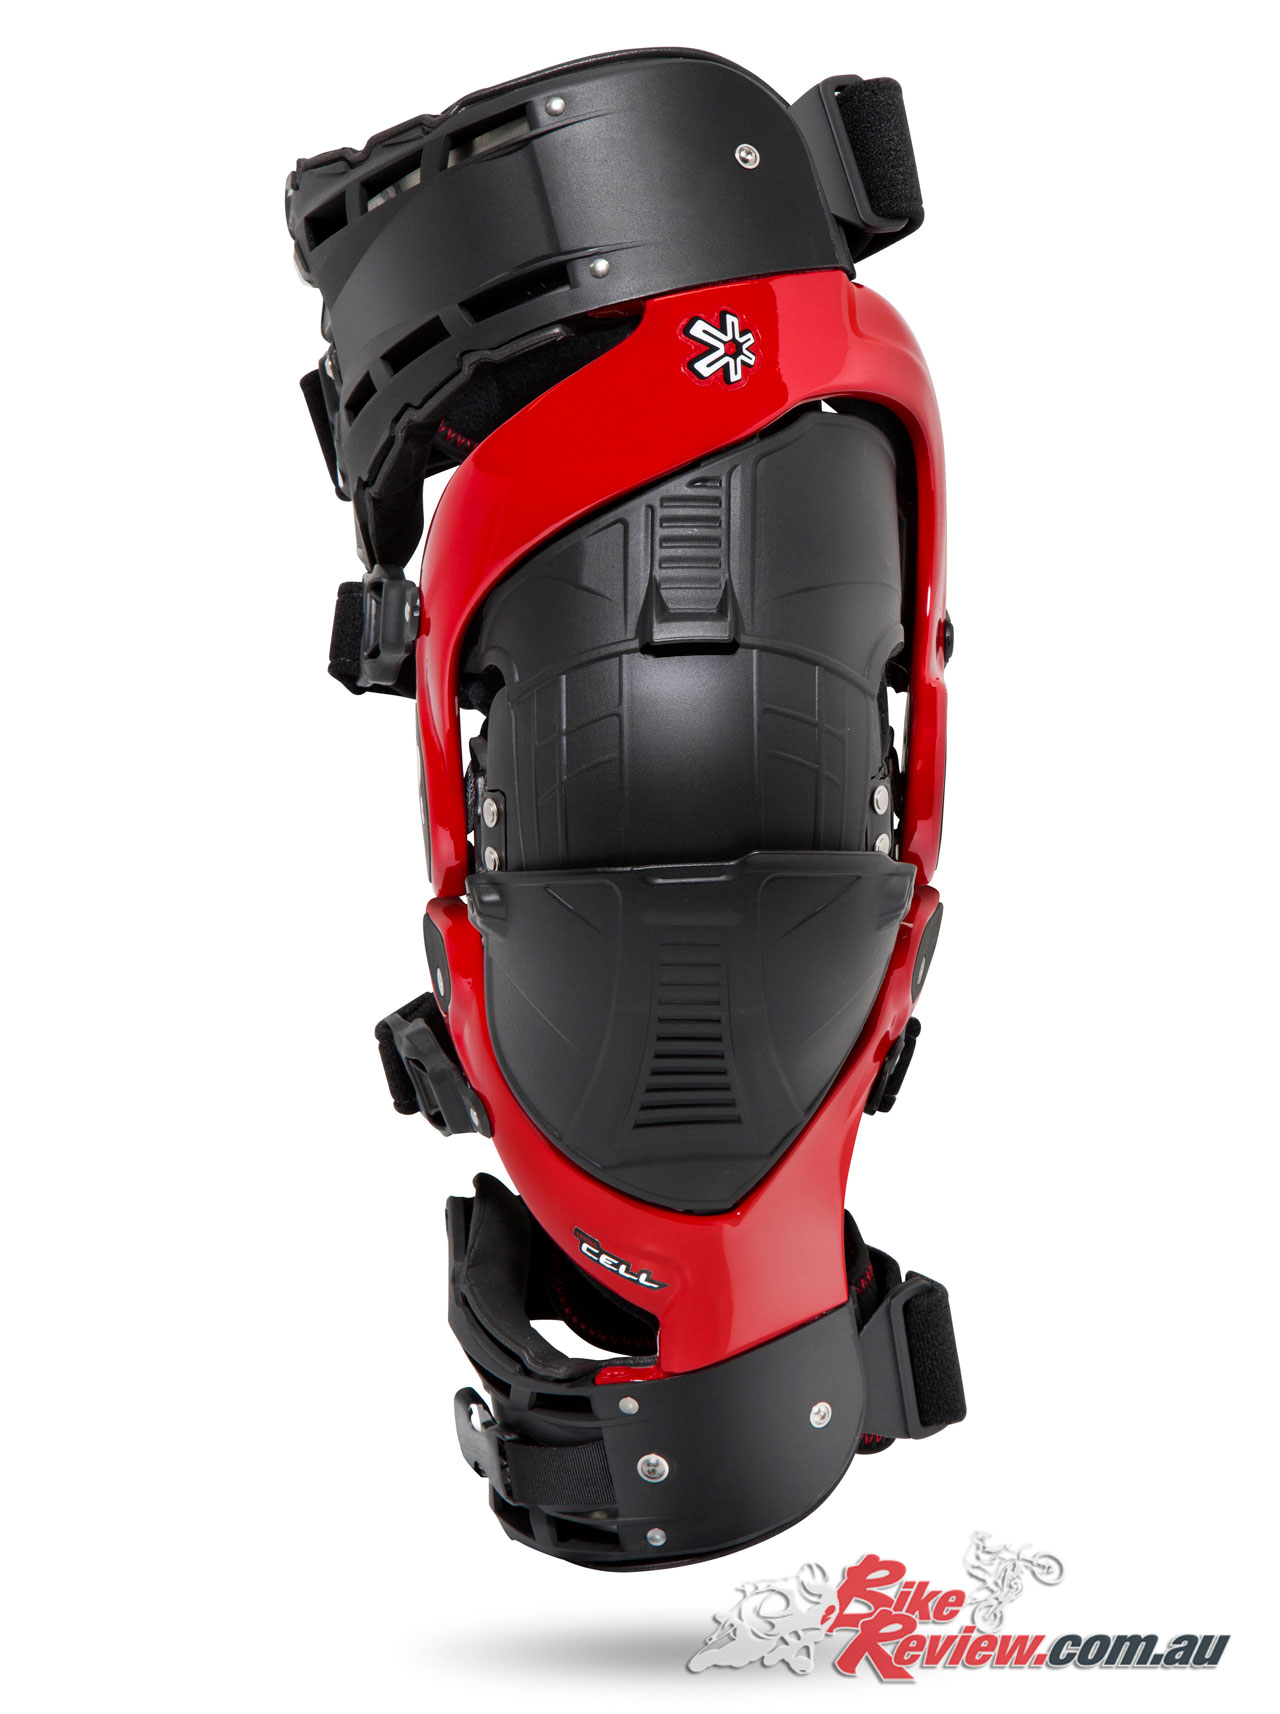 New Product Asterisk Ultra Cell 20 Knee Brace - Bike Review-4381